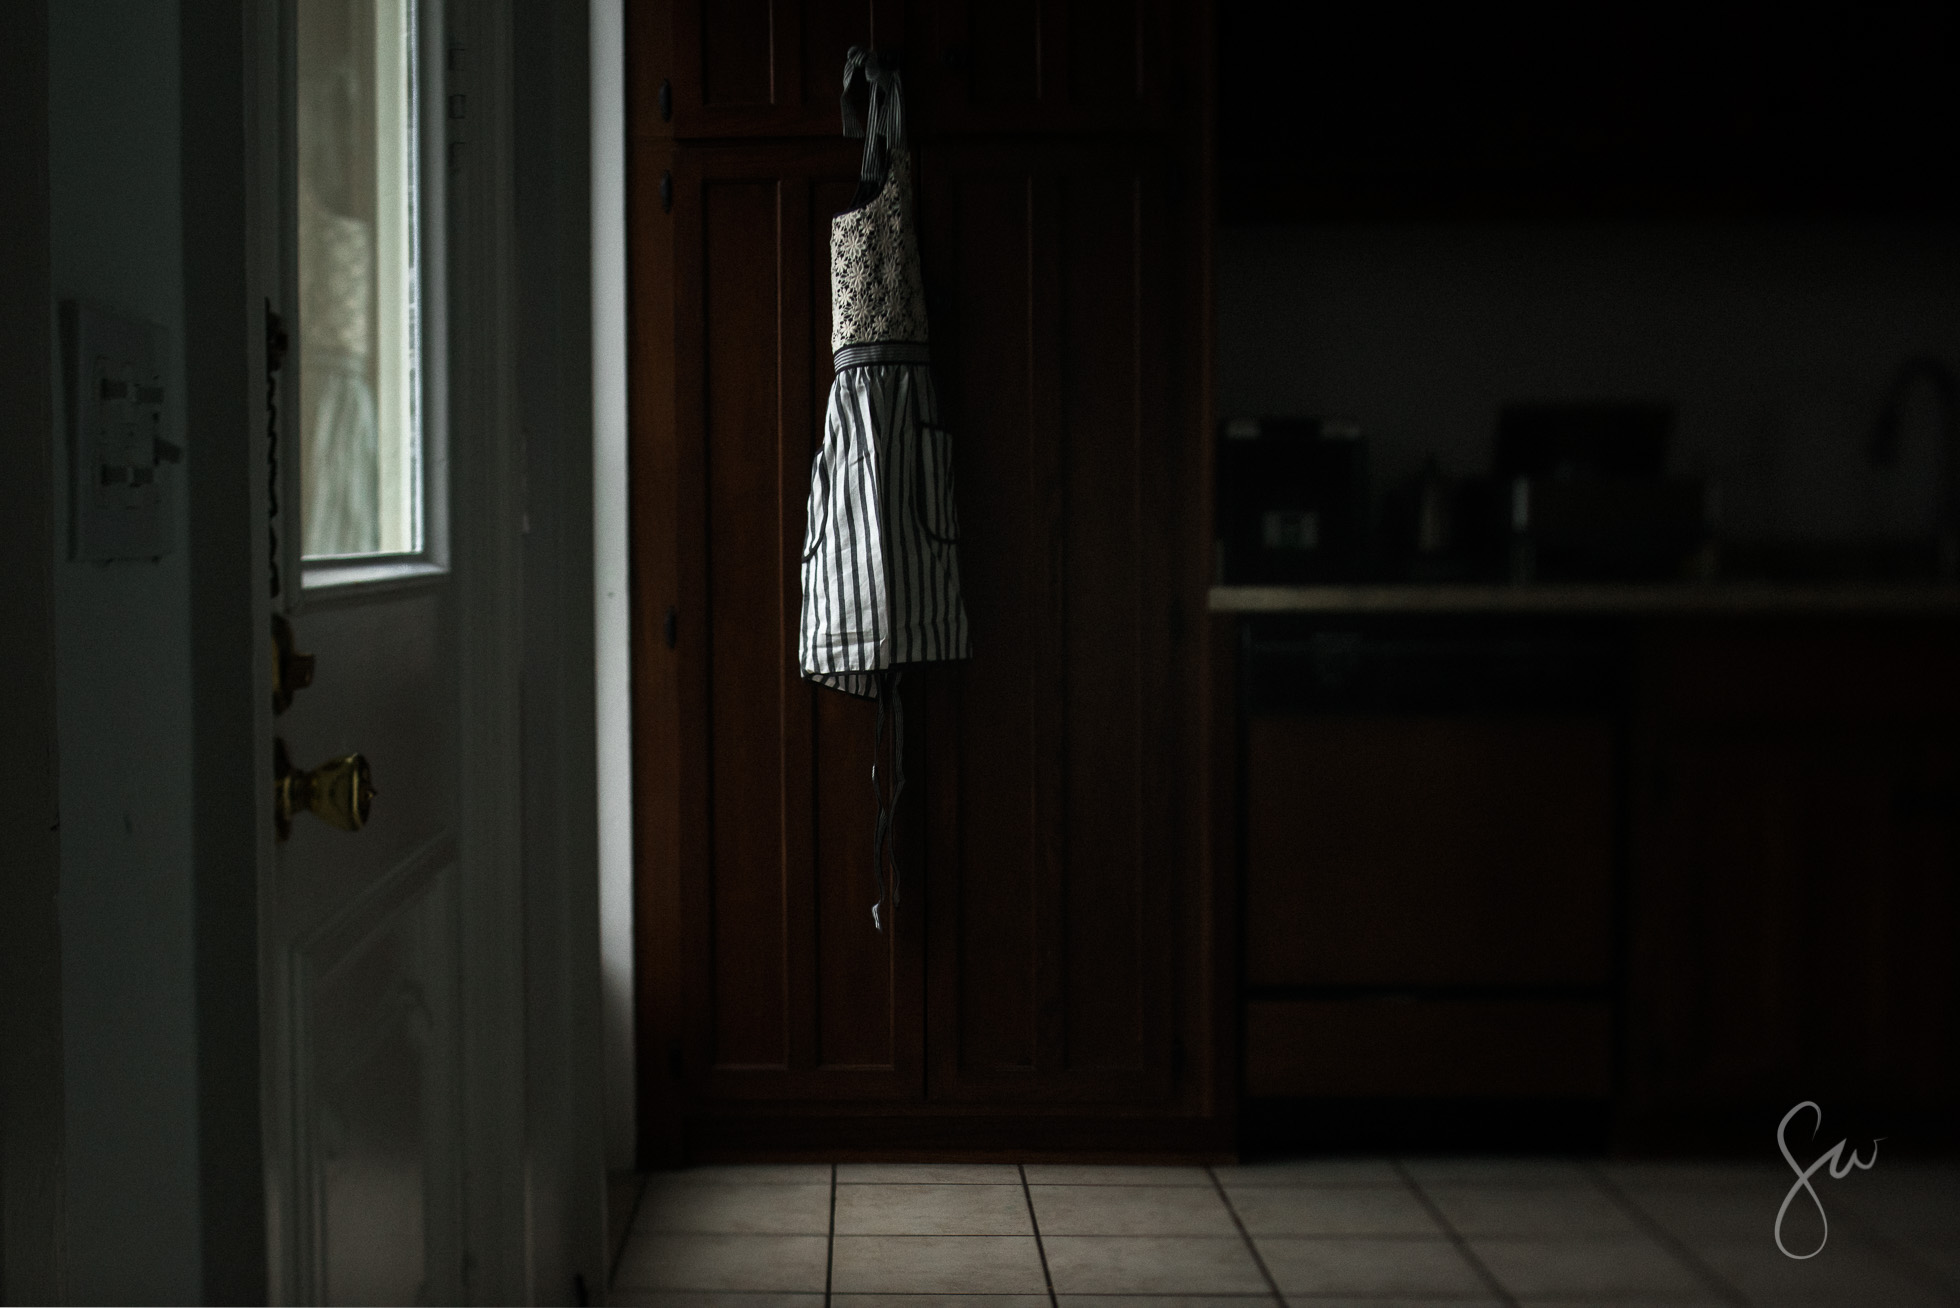 Vintage-Lace-Striped-Apron-and-Dramatic-Low-Light-with-Natural-Light-Windows-in-Kitchen-3970